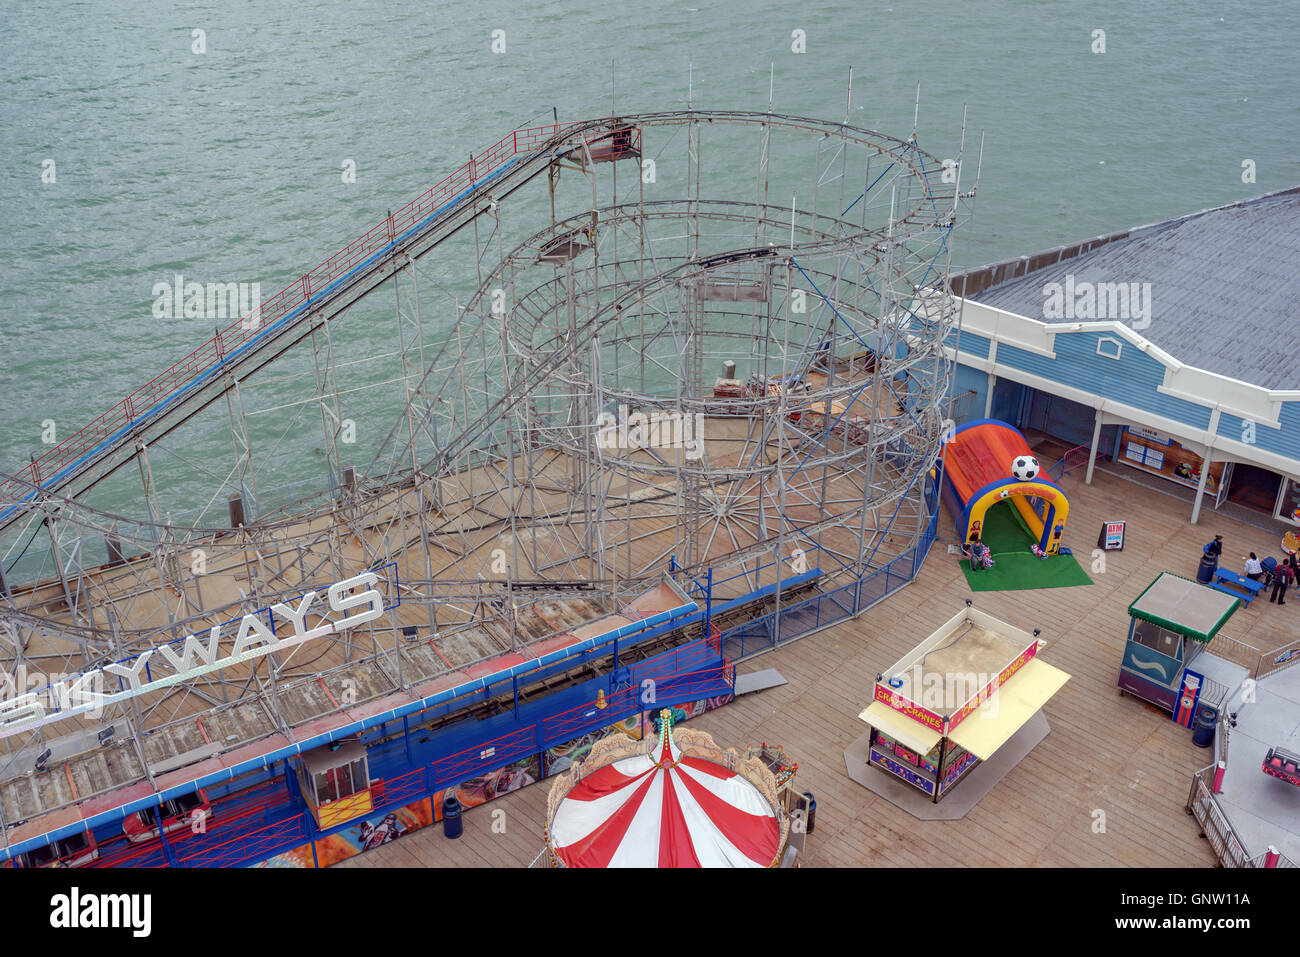 Clarence Pier roller coaster captured from the 'Portsmouth Eye' ferris wheel. Stock Photo